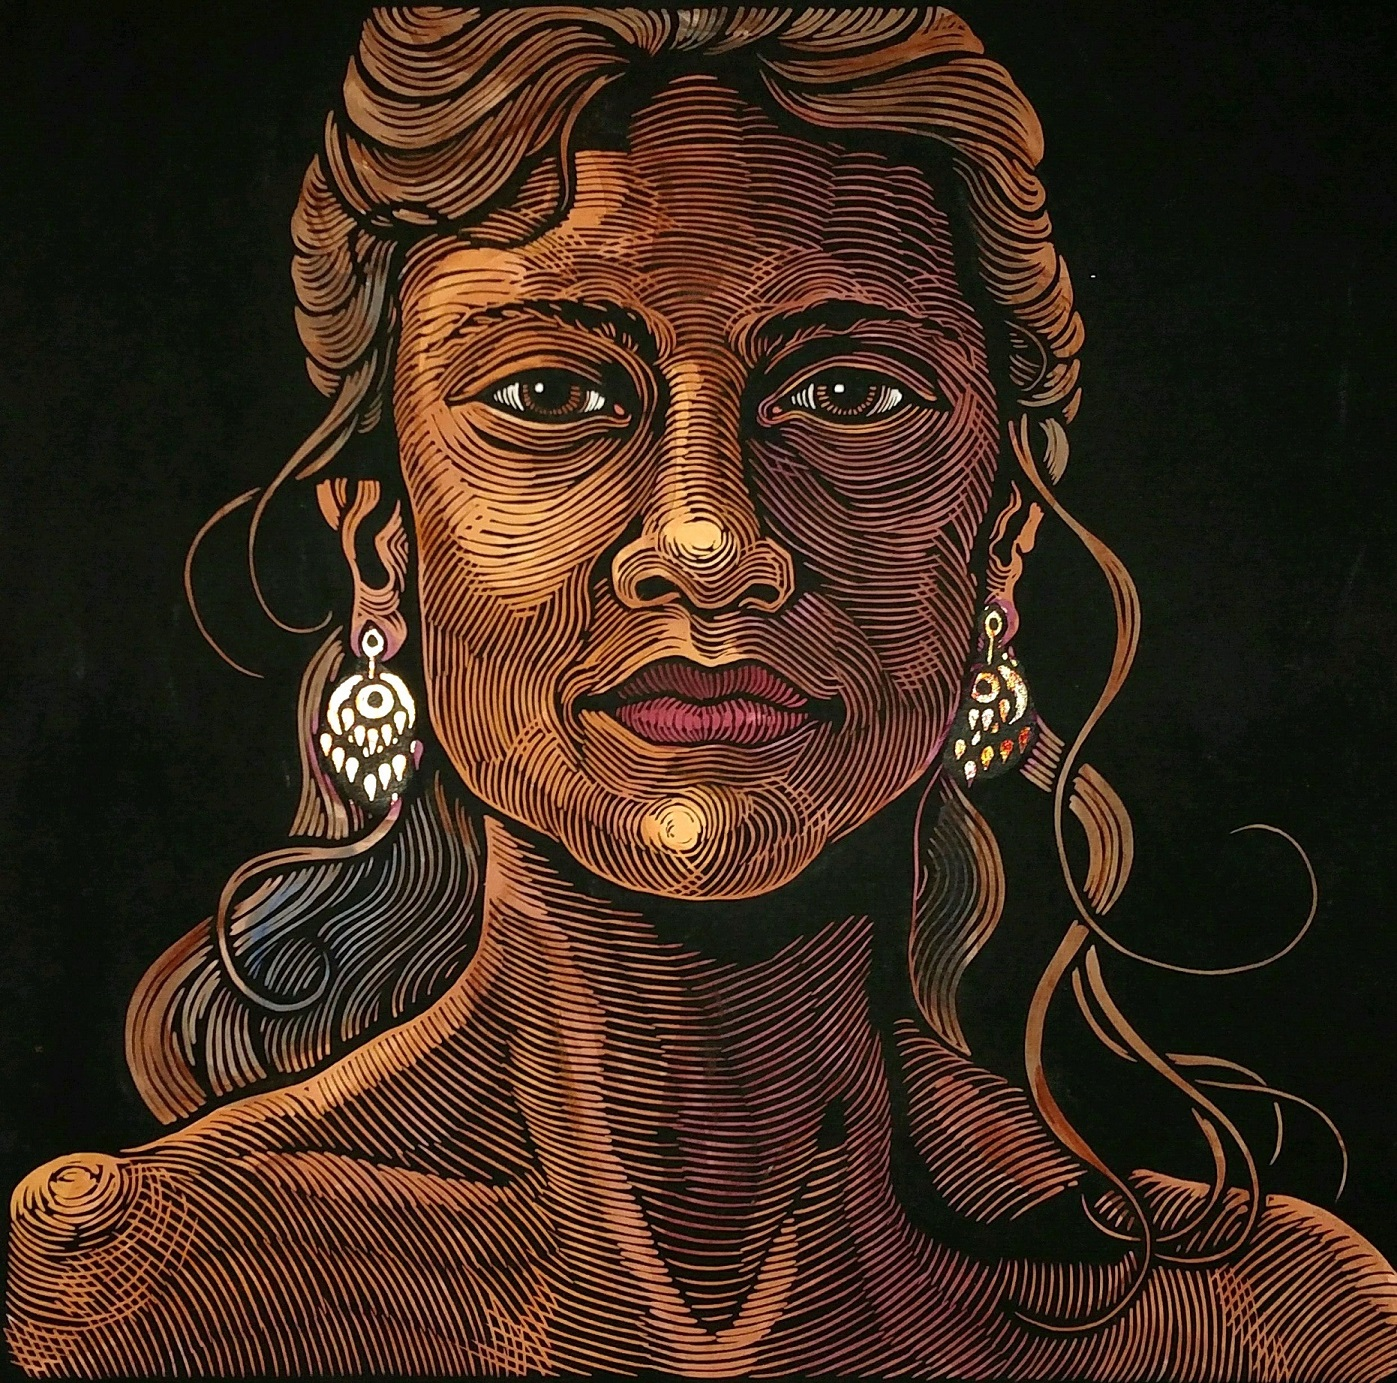 """""""One World - Woman with Gold Earrings""""- 24"""" x 24"""" - Linoleum block print with watercolor and gold leaf on handmade Kozo paper. #anitahaganoneworld"""